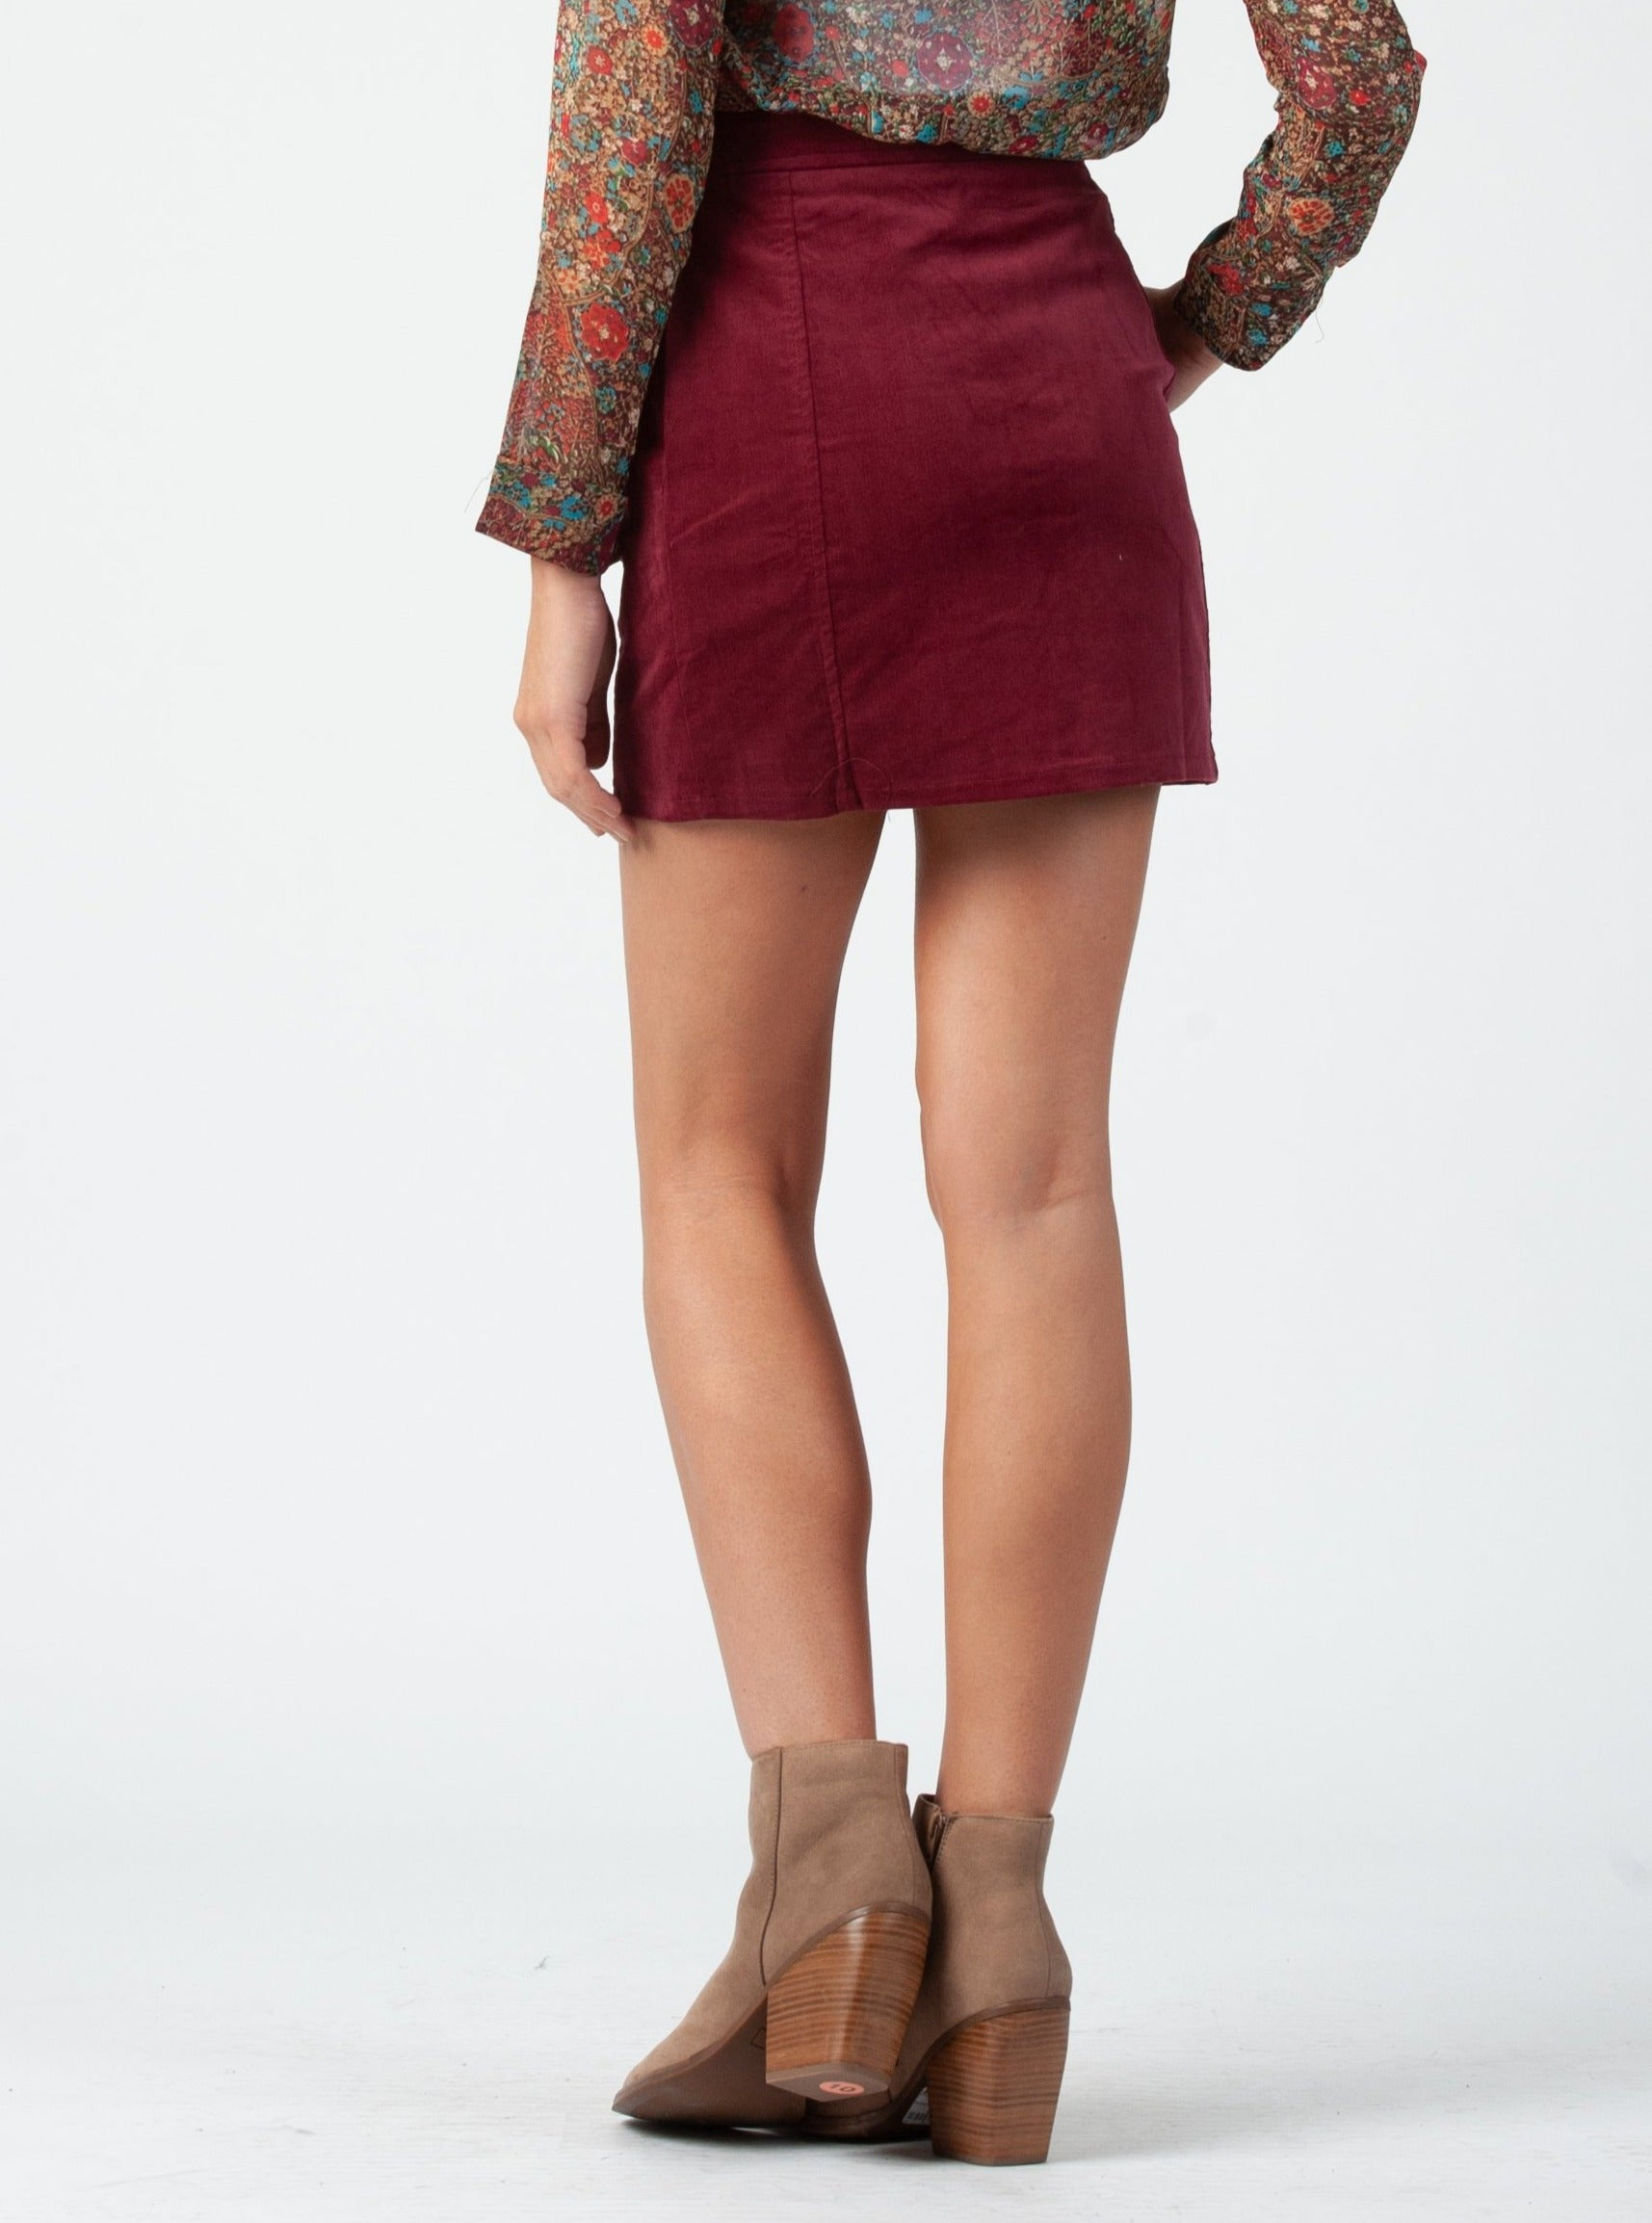 CHLOE RING ZIP UP SKIRT | WINE